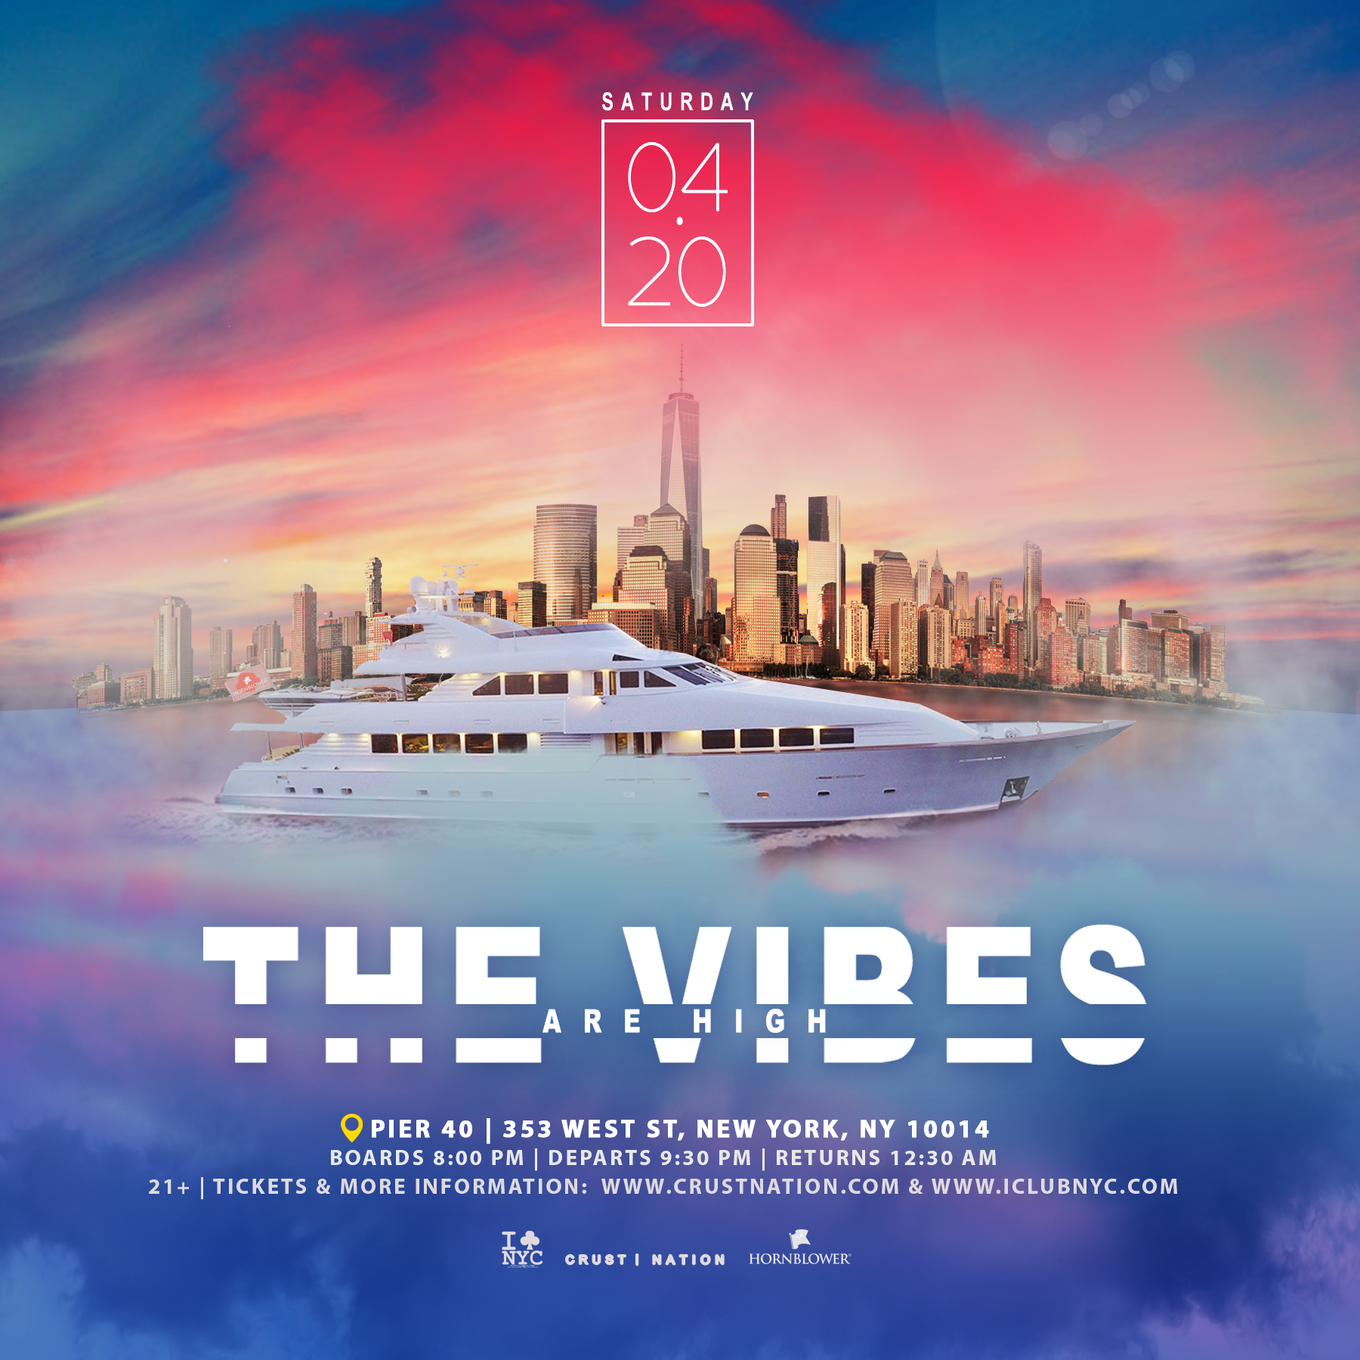 The Vibes Are High 4/20 Boat Party NYC - Tickets - PIER 40